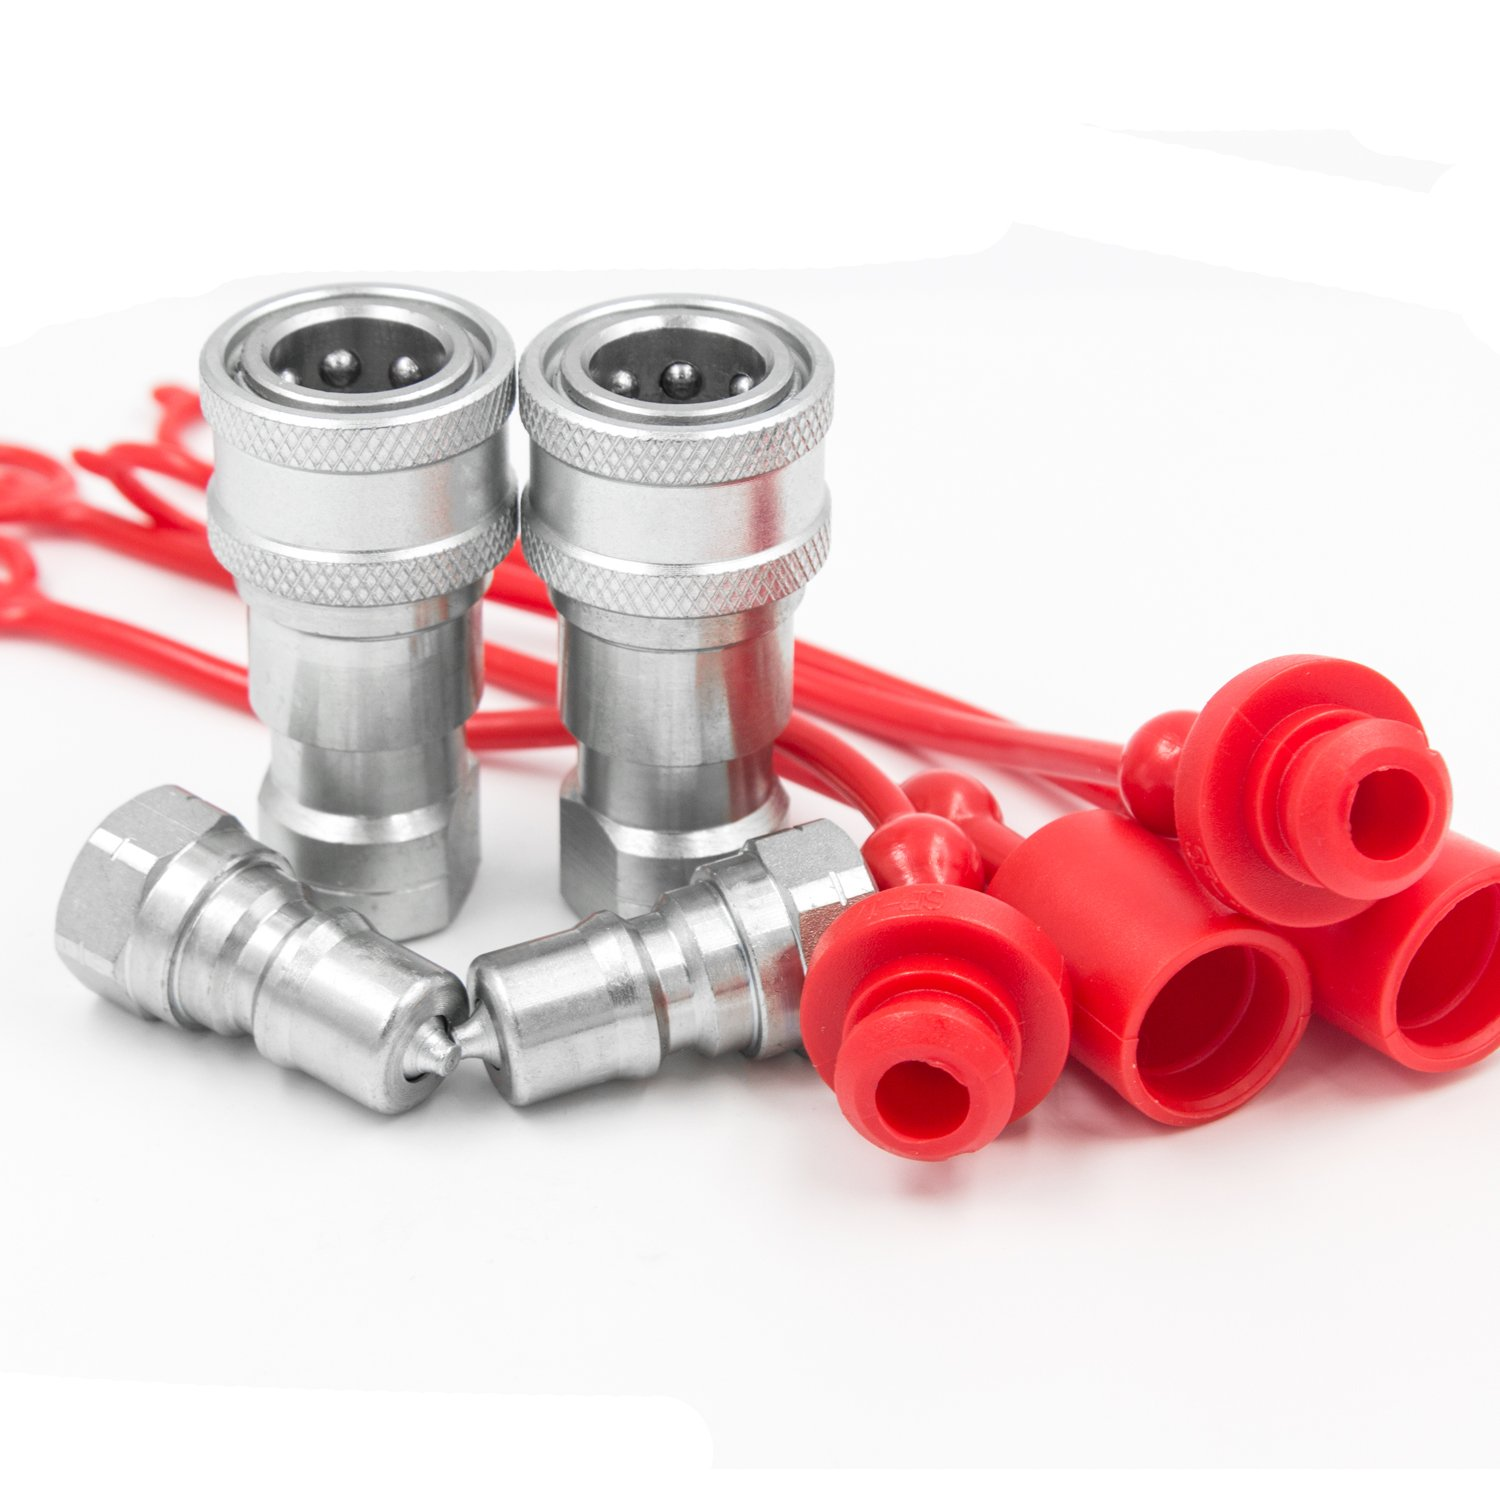 2 Sets 1/4' NPT Thread ISO-B Hydraulic Quick Disconnect Coupler Tractor Quick Coupling with Dust Caps Gute